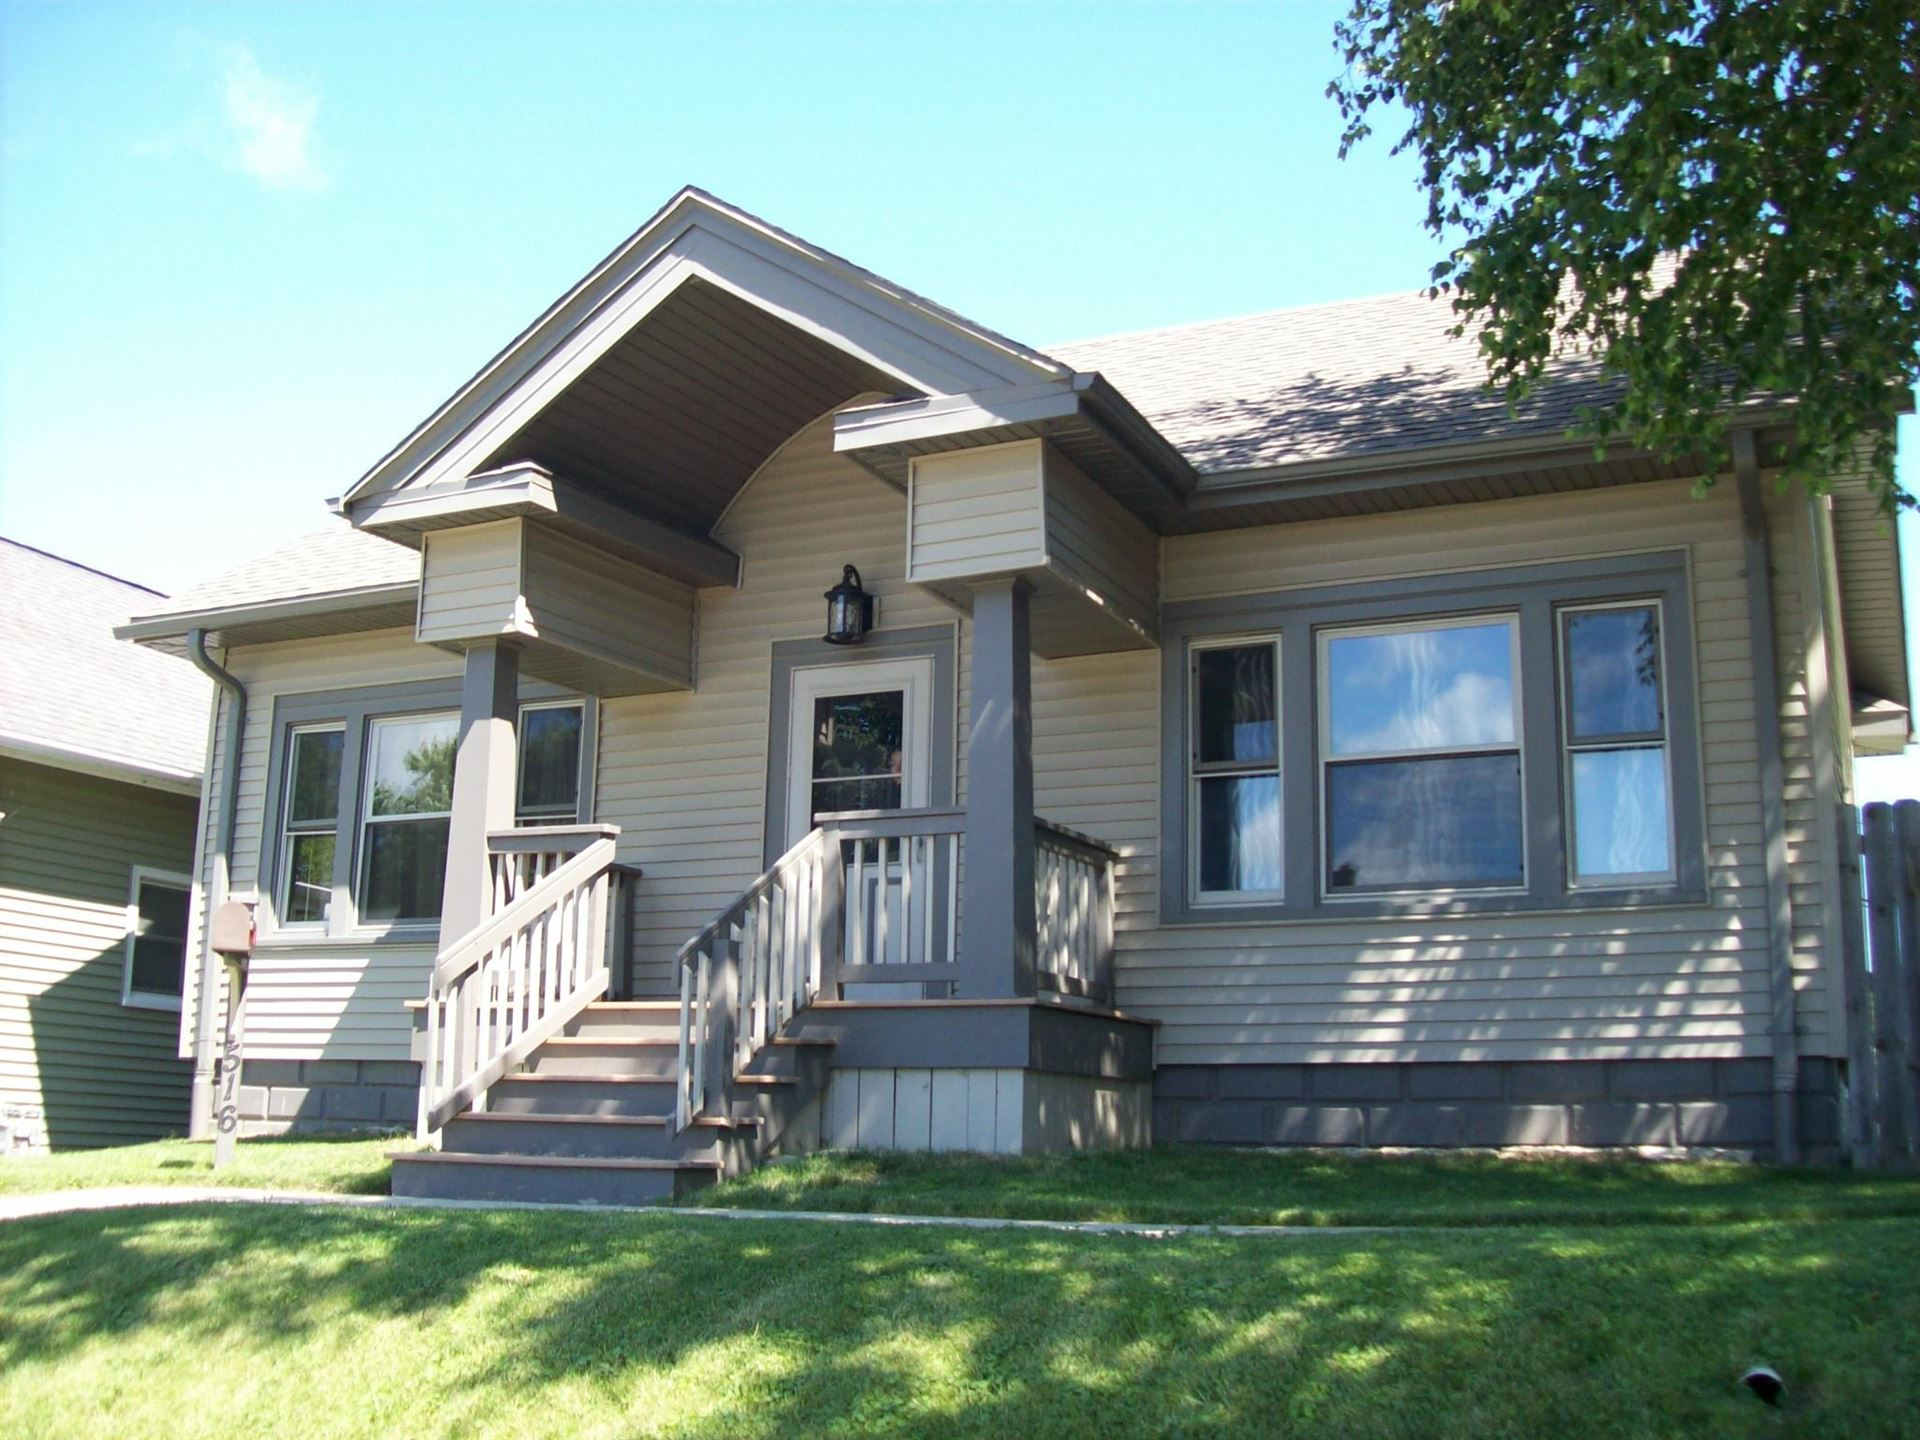 516 Marquette Ave, South Milwaukee, WI 53172 - #: 1698542